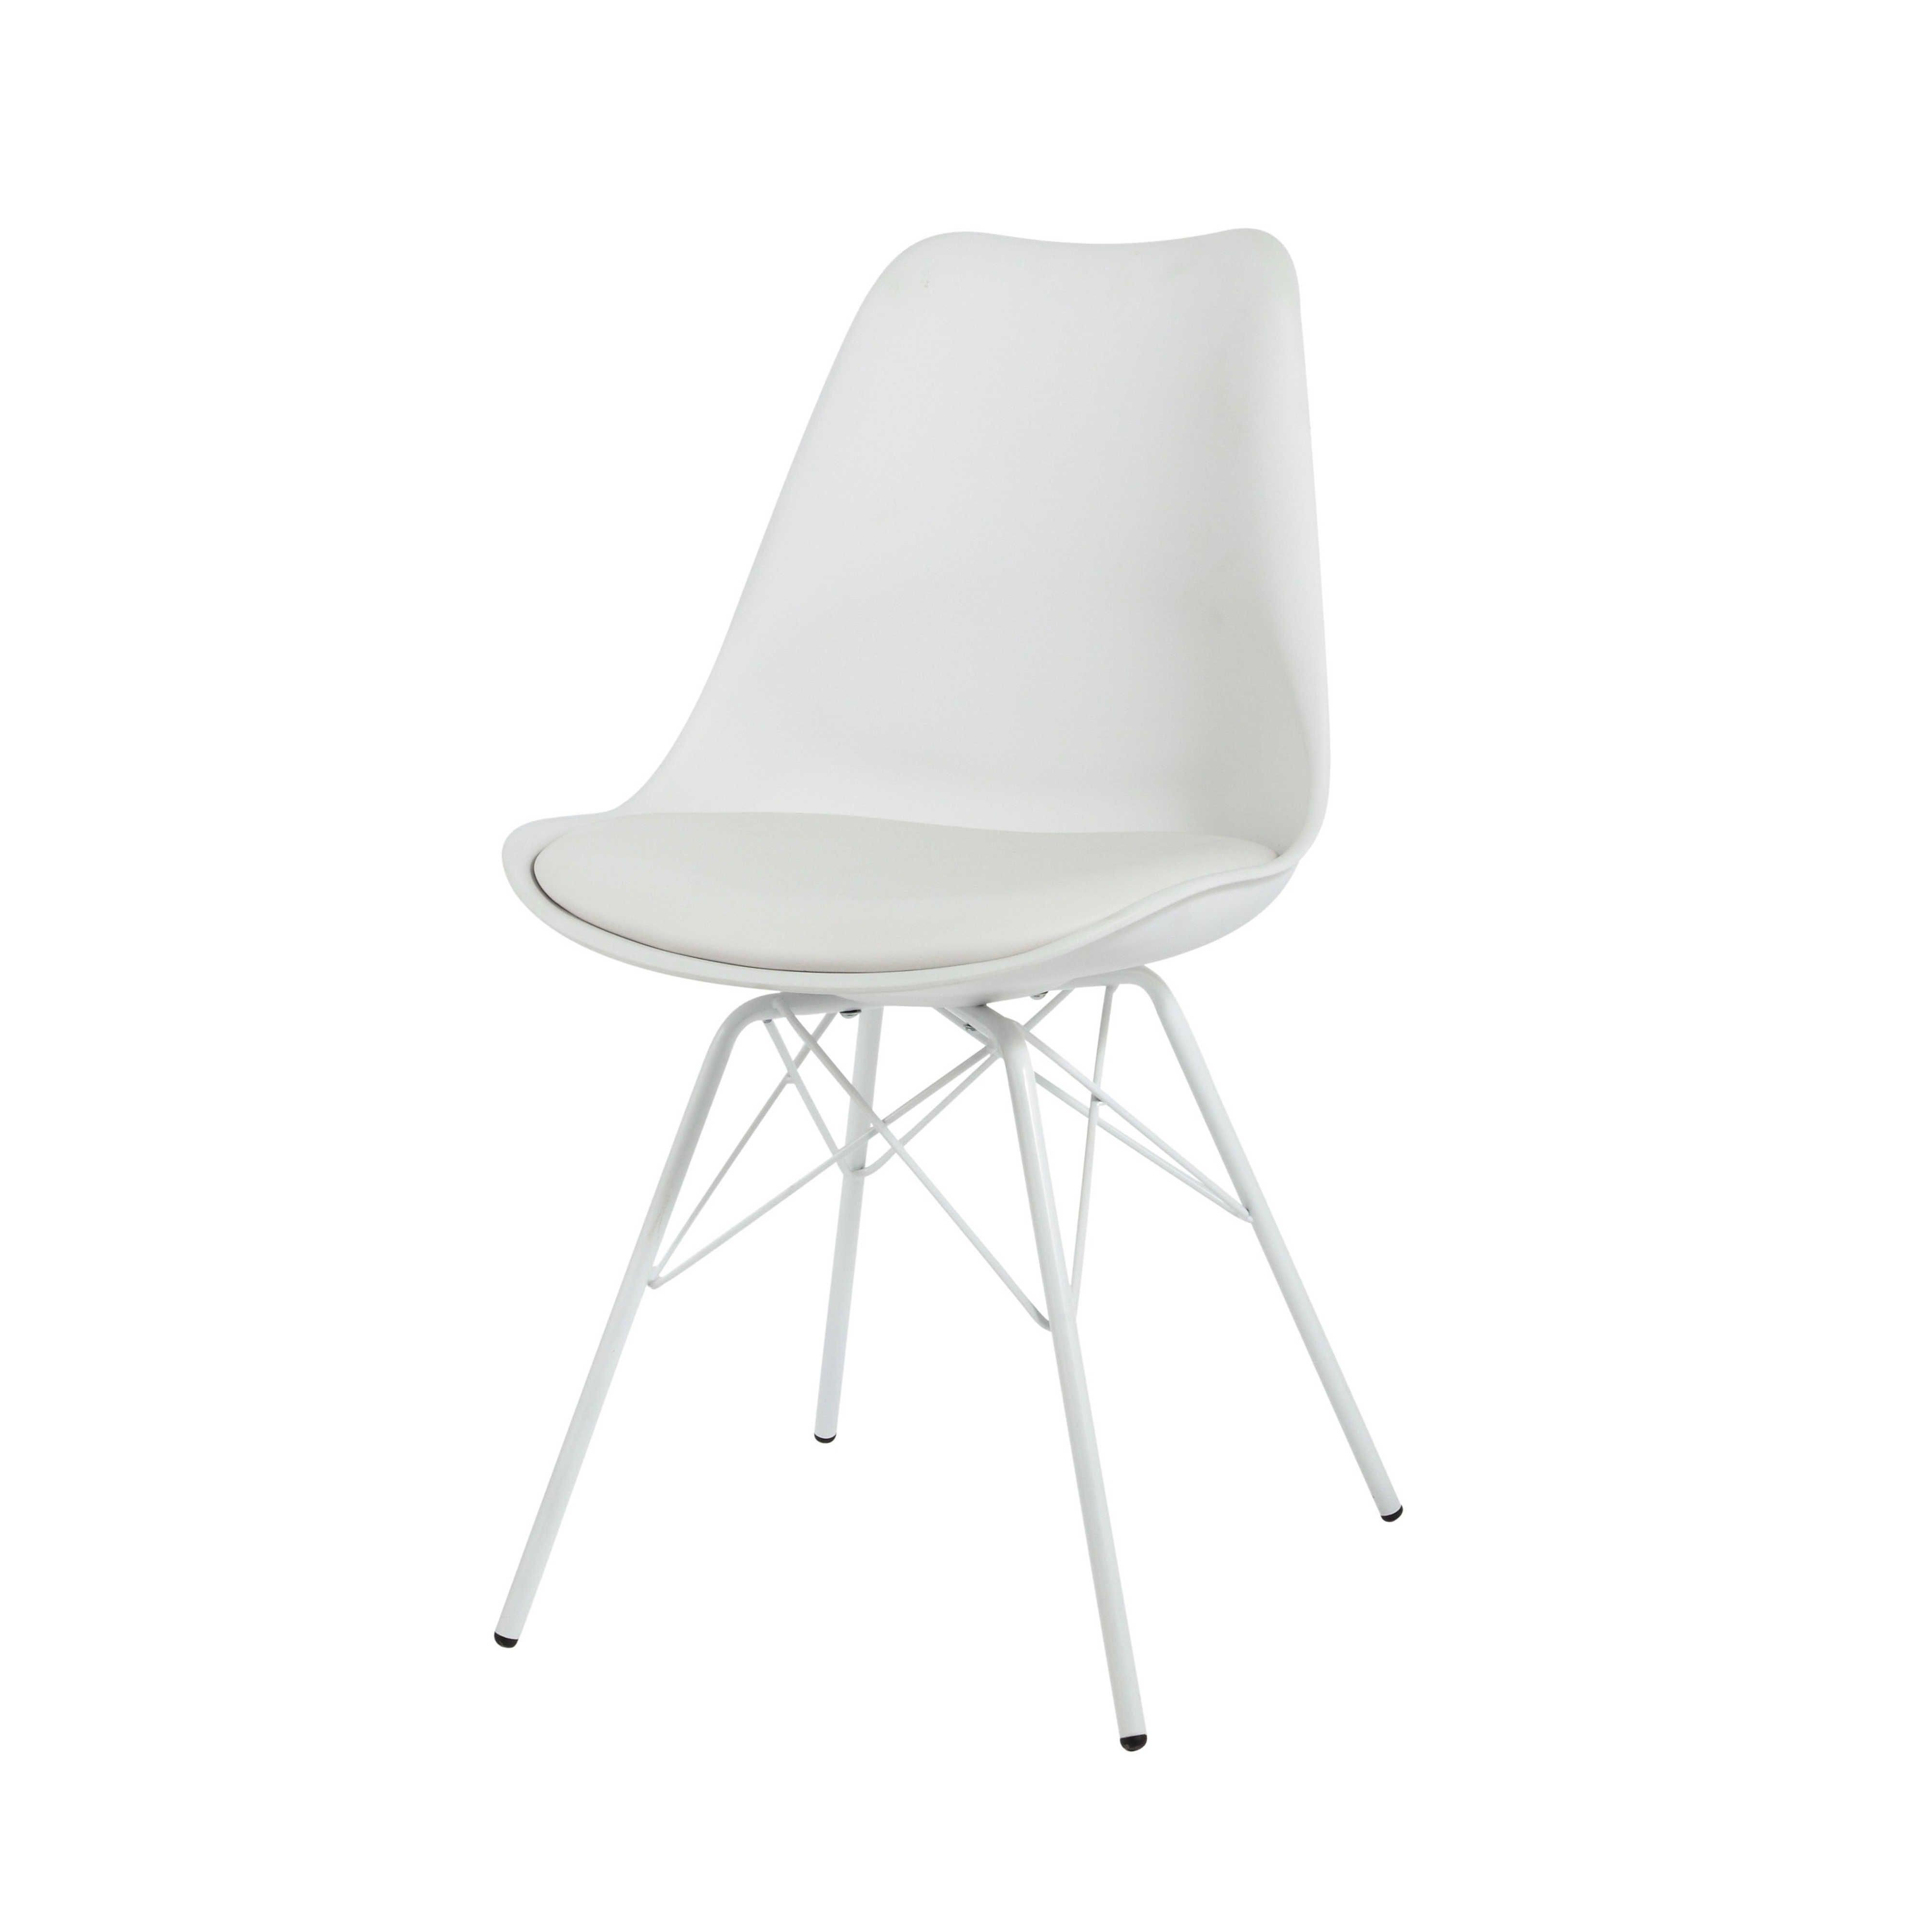 Chaises Blanches Modernes Chaises Modernes Blanches Lot Chaises Lot Chaises